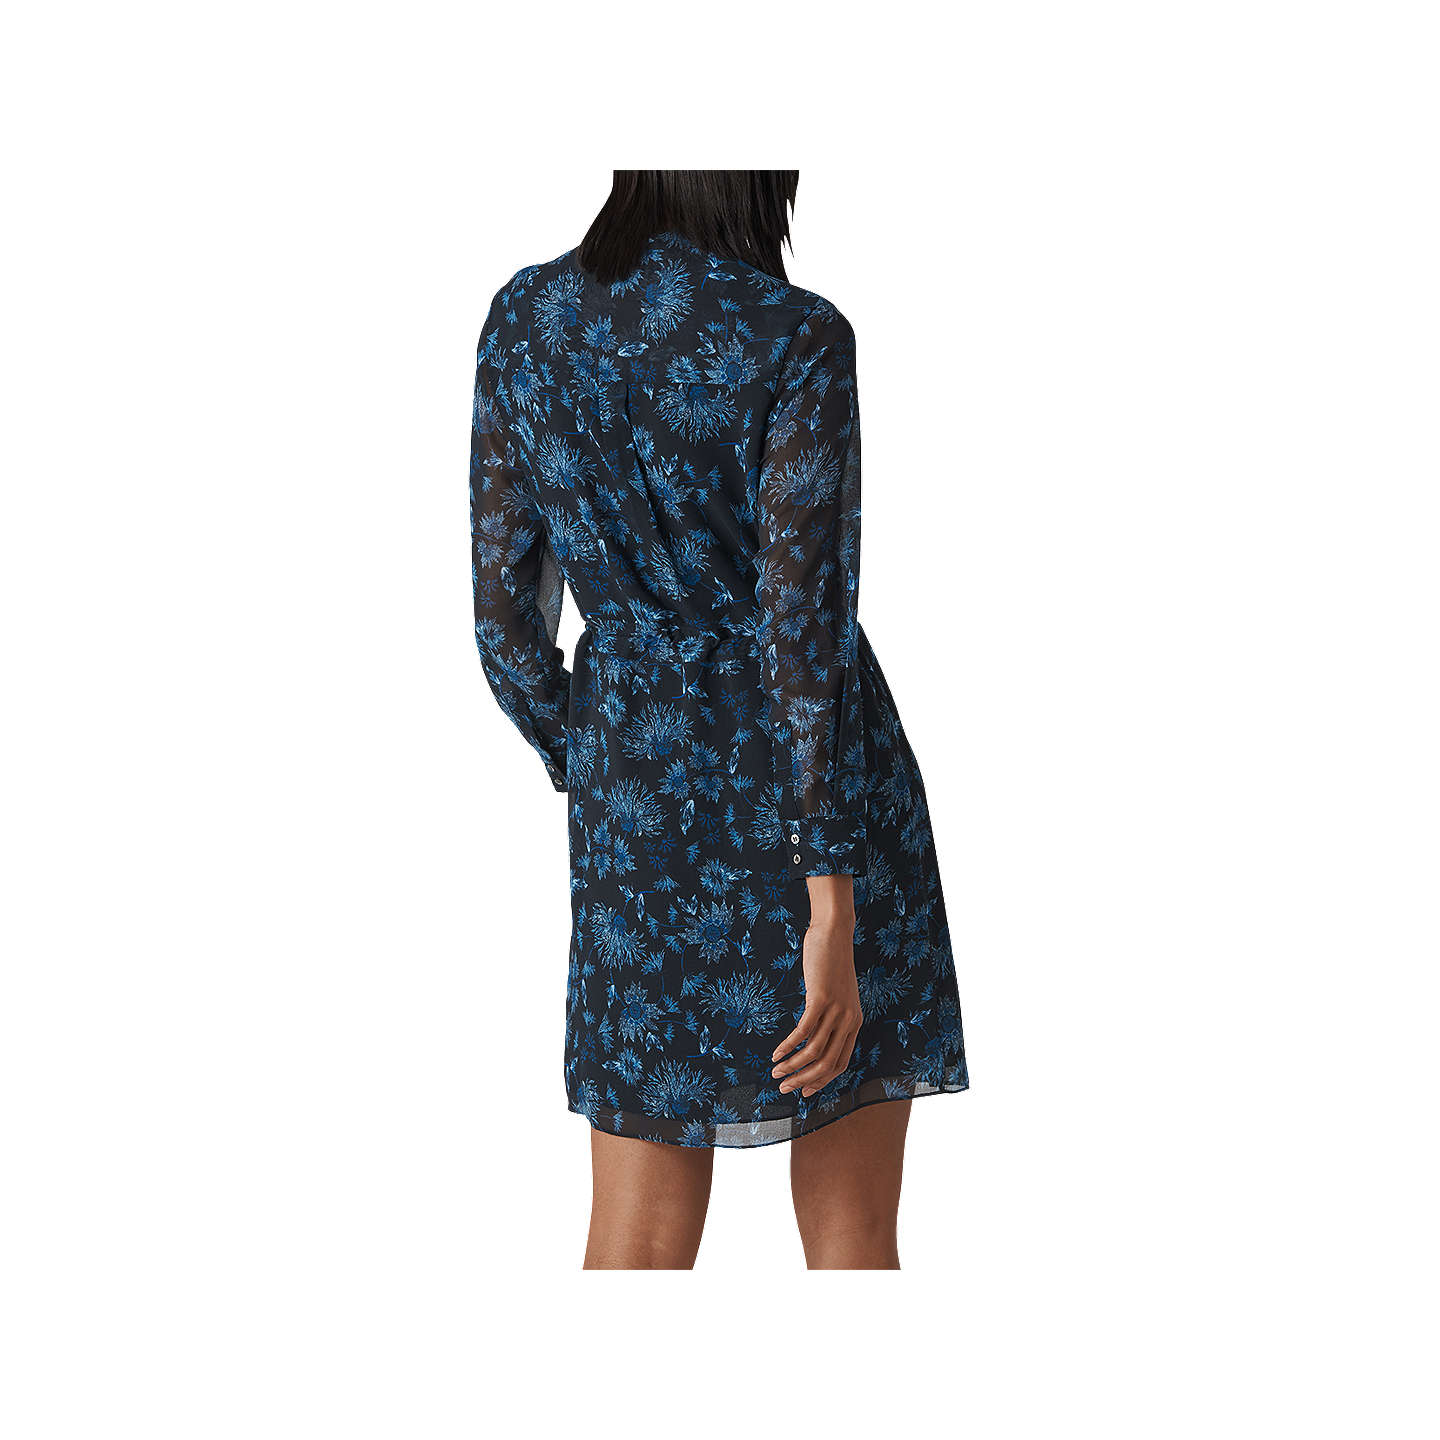 Pitti Whistles Multi Shirt Dress Blue Print Fhwyhxd Dine